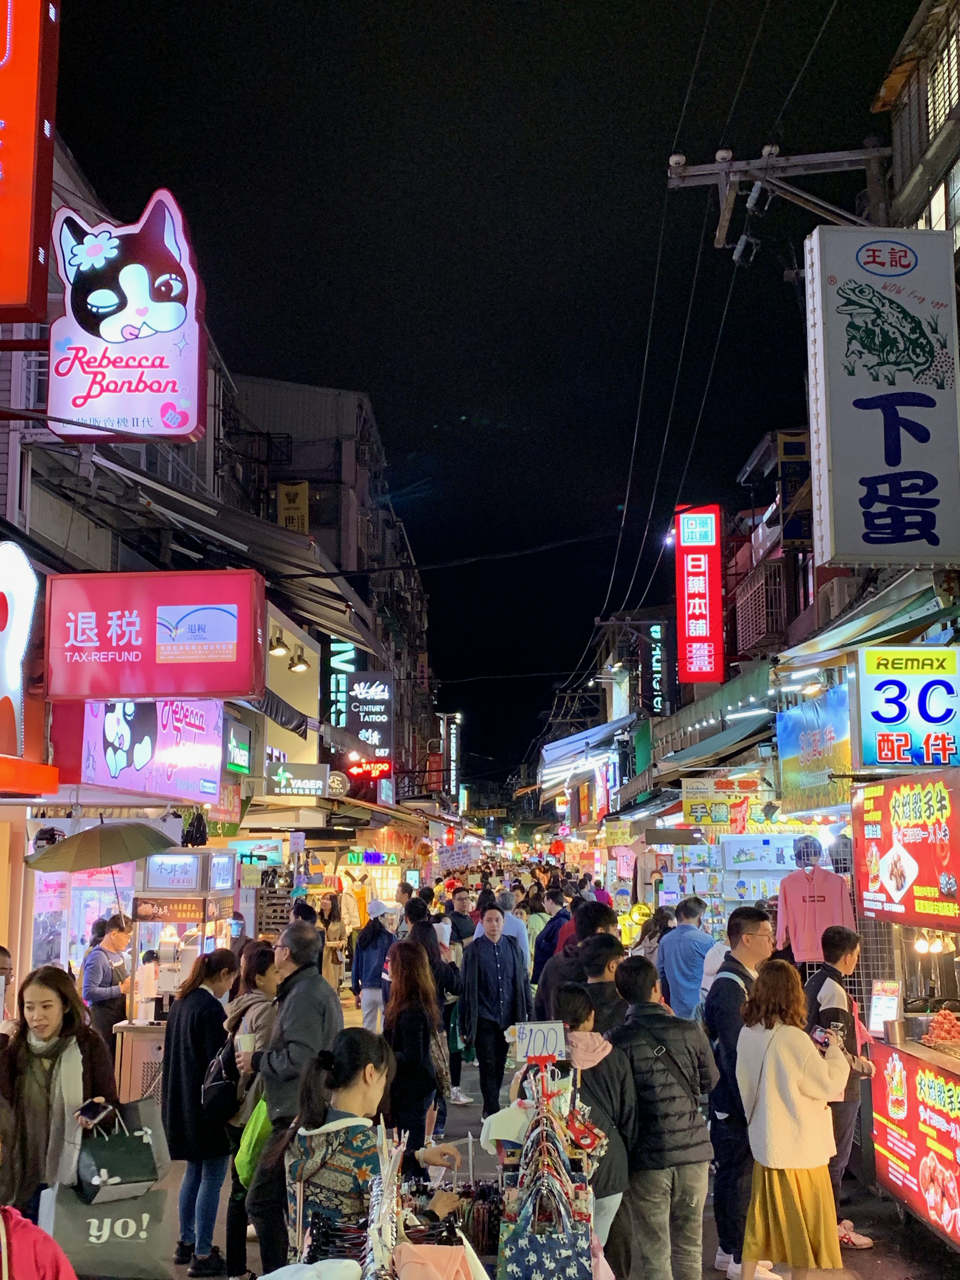 Earlier this year, we made a trip to Taiwan, the famous place of origin of all things bubble tea and the home of Chatime.